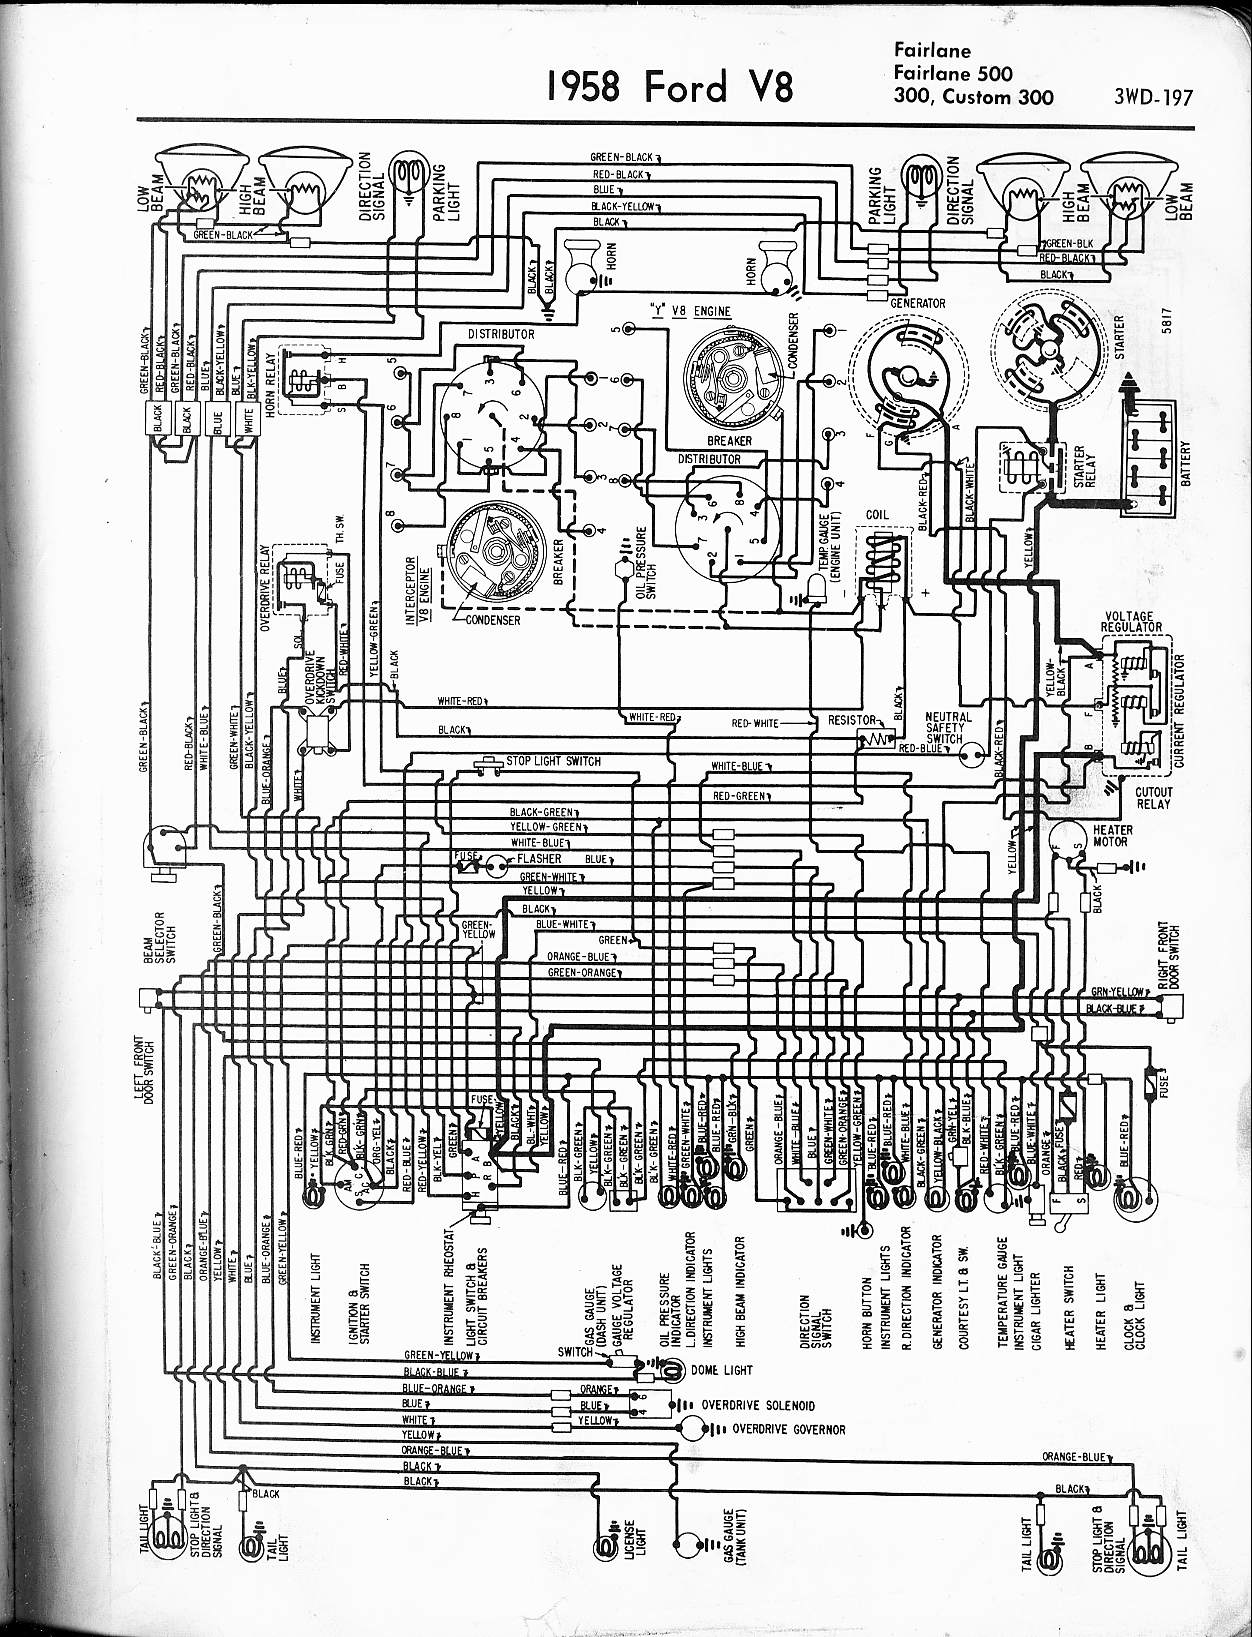 MWire5765 197 57 65 ford wiring diagrams 1968 ford galaxie 500 wiring diagram at fashall.co